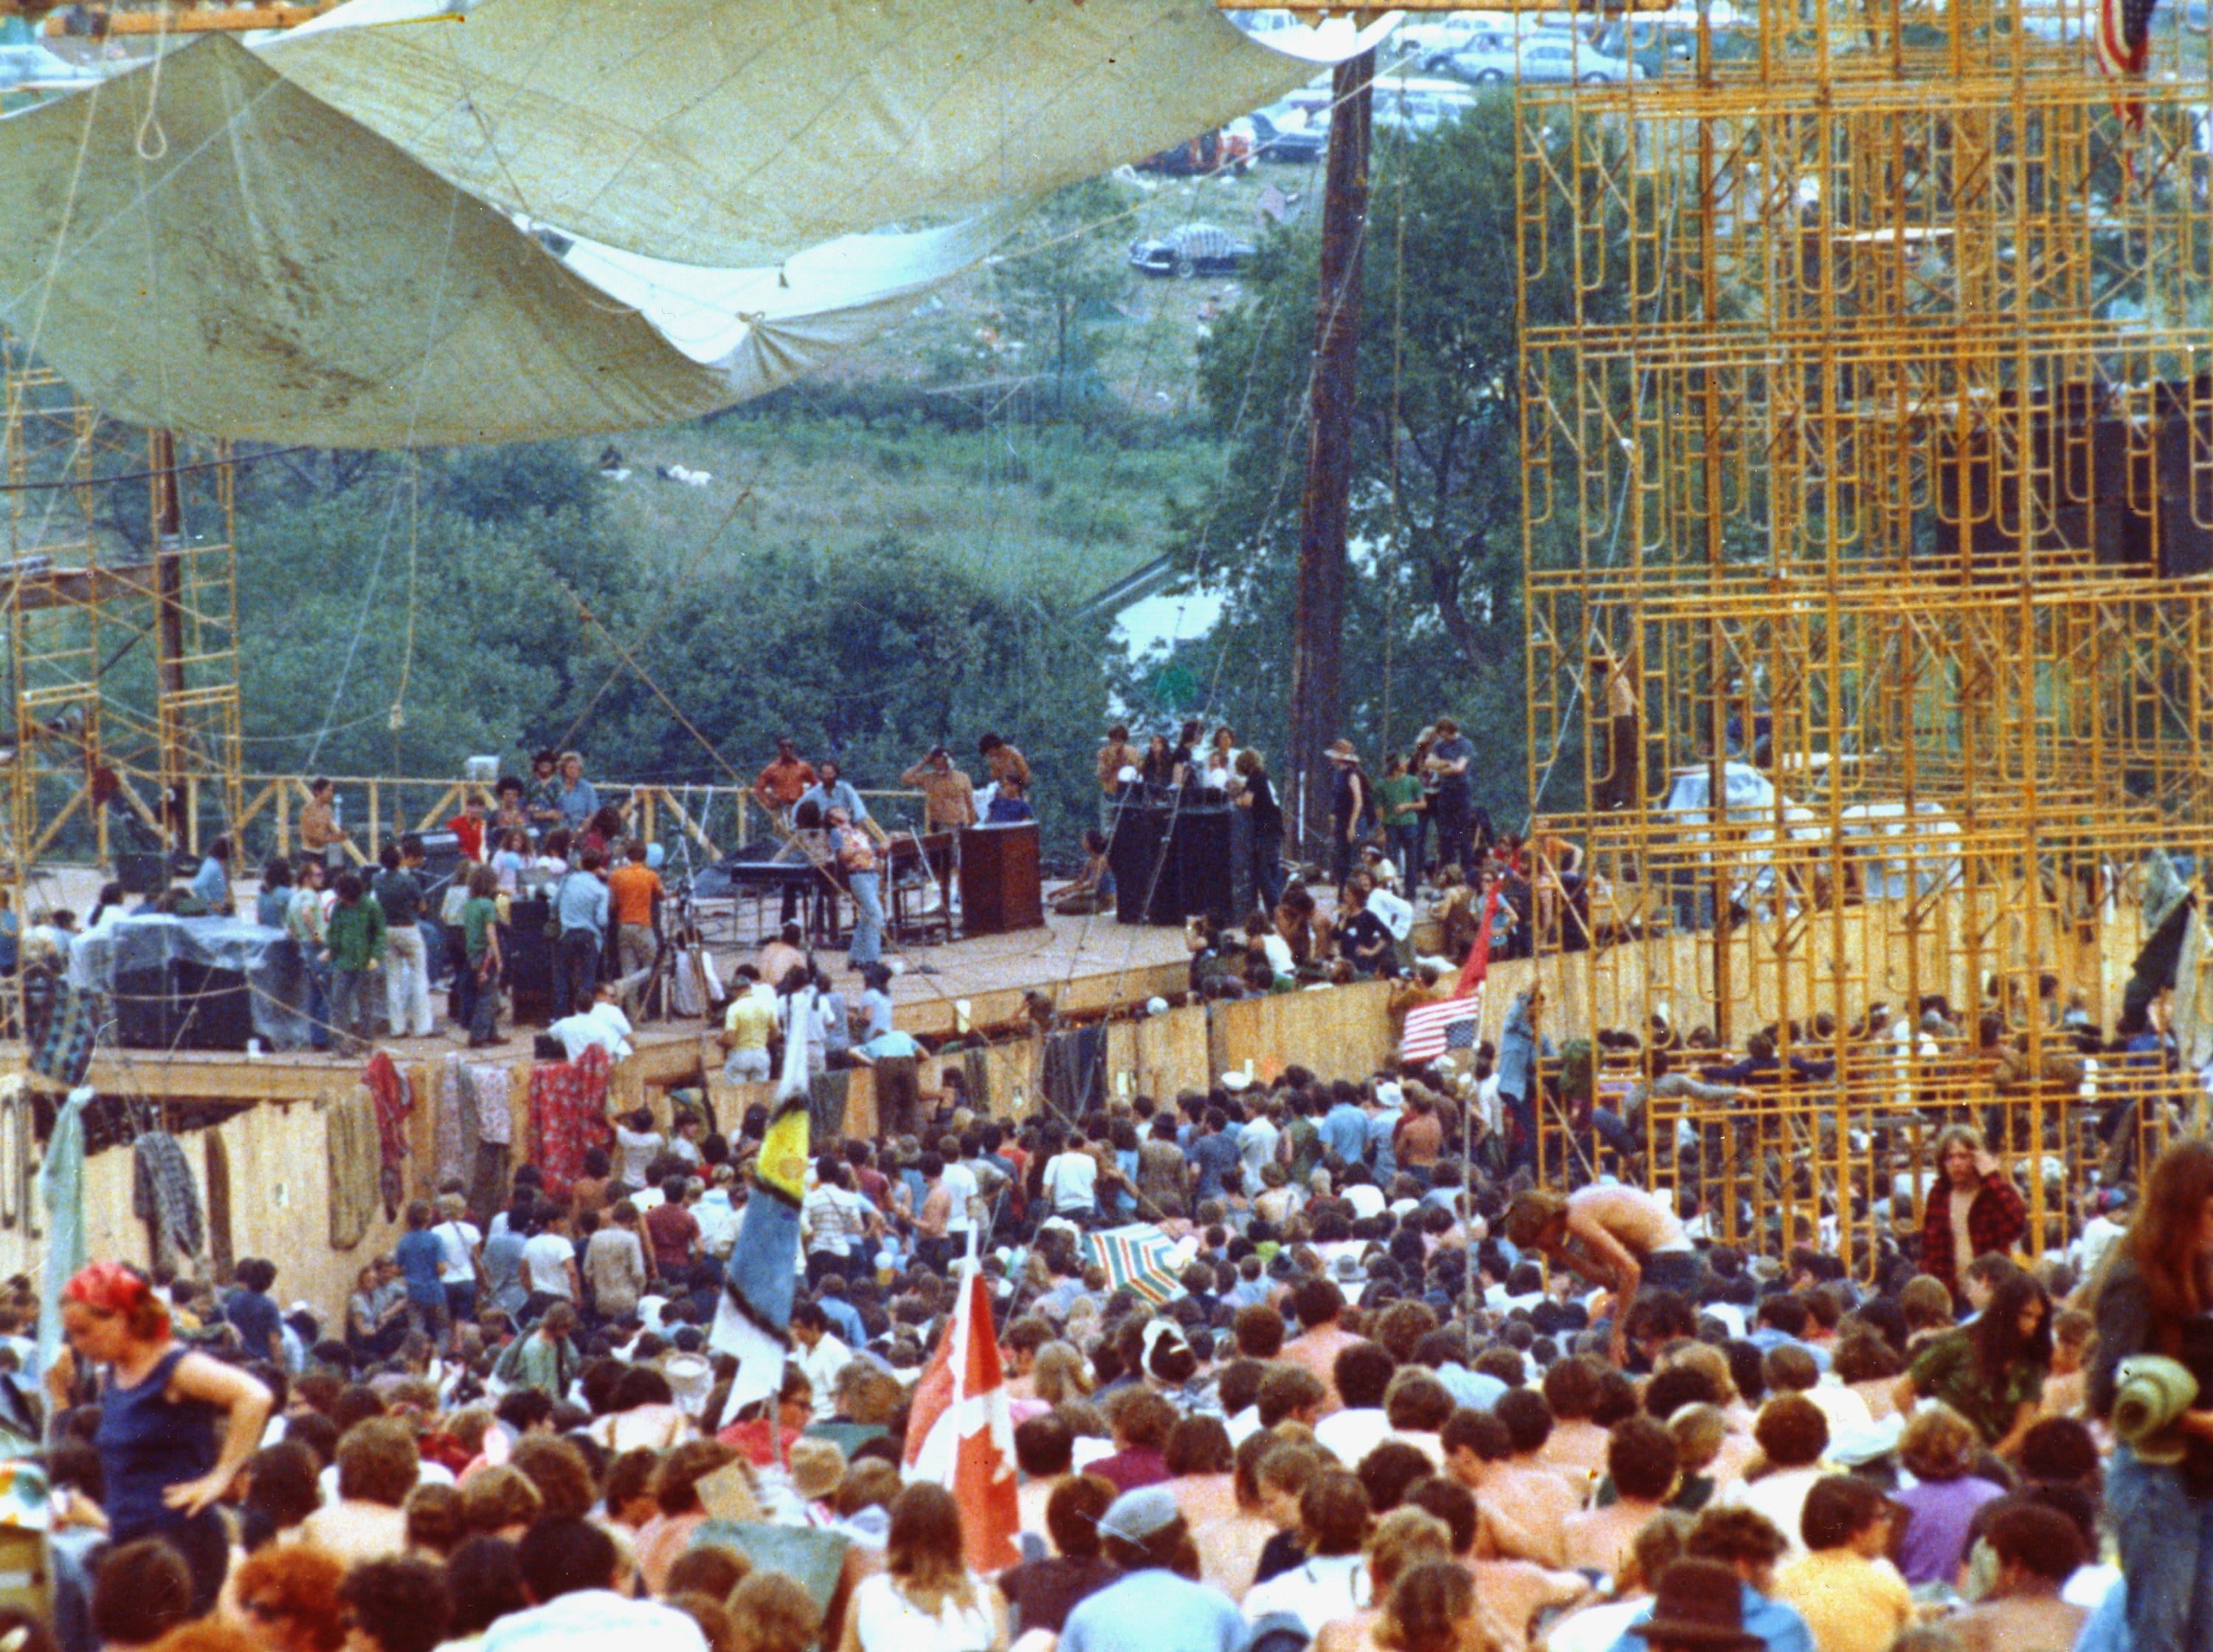 DO NOT USE THIS PHOTO, IT'S OUT OF OUR PLAN AND WE HAVE TO PAY FOR IT. Concert goers surround the stage as Joe Cocker performs at the Woodstock Music and Arts Festival in Bethel, N.Y. on Aug. 17, 1969.